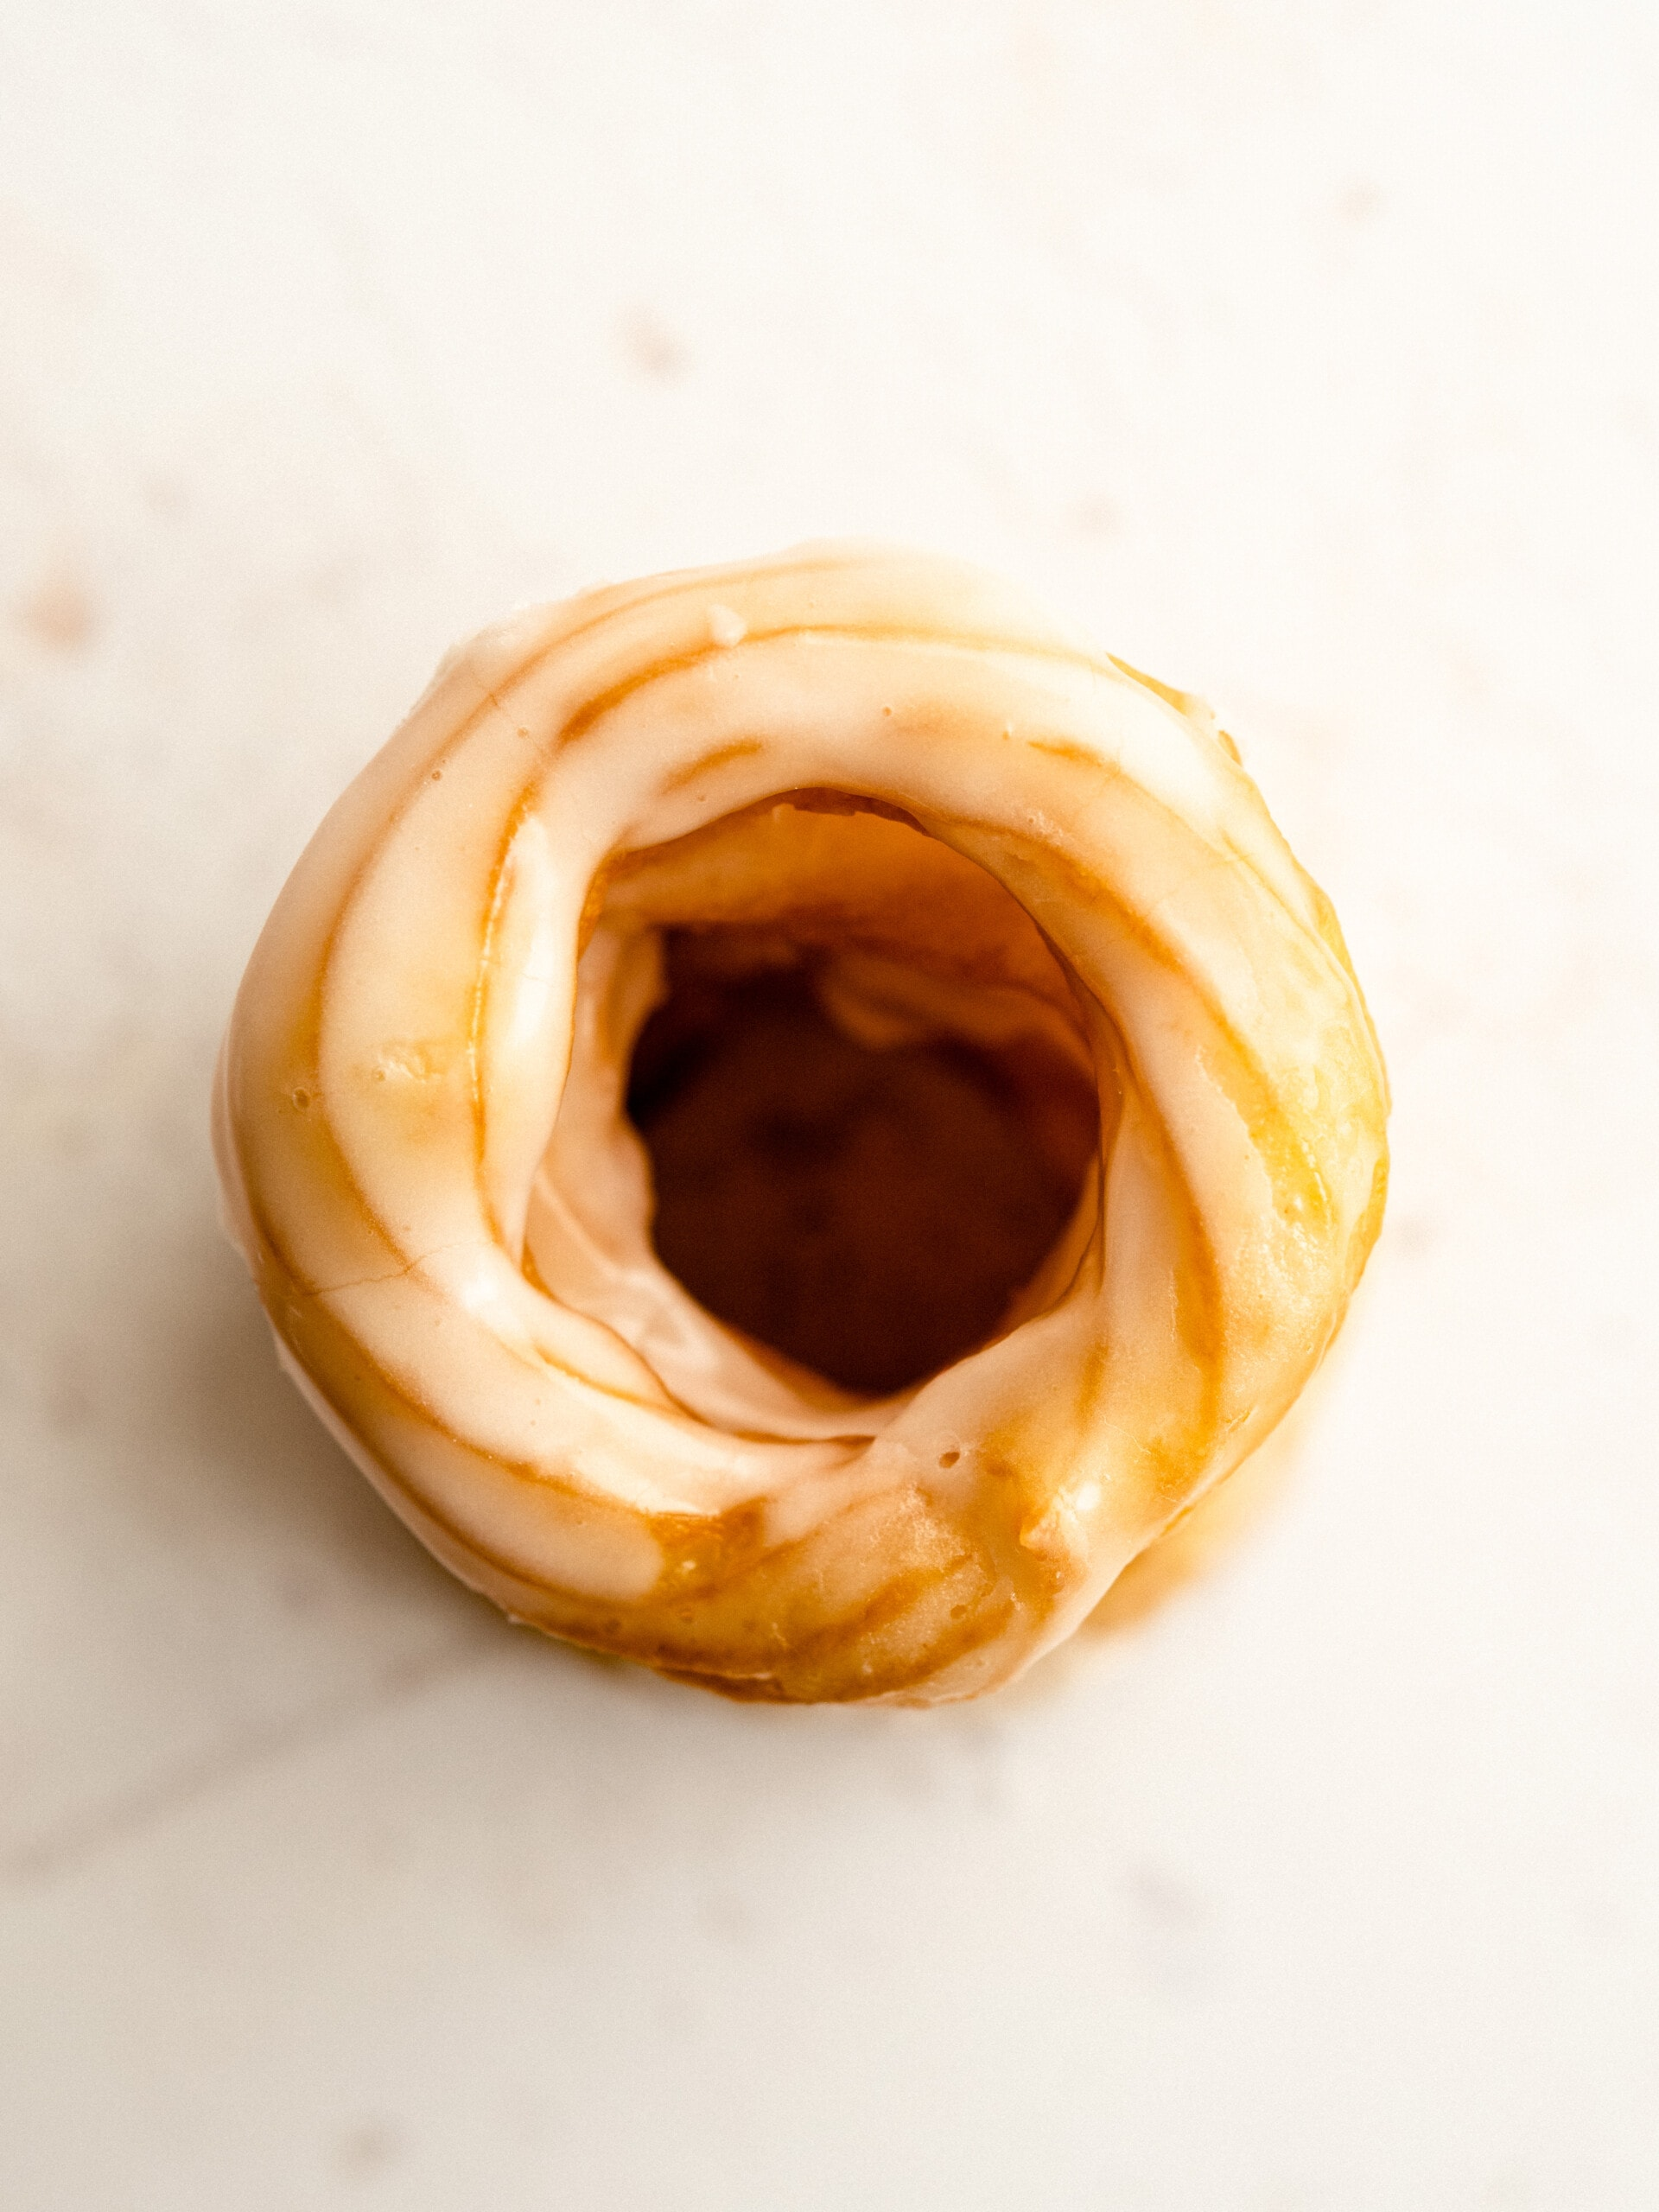 Top-down view of cruller donuts stacked on top of each other